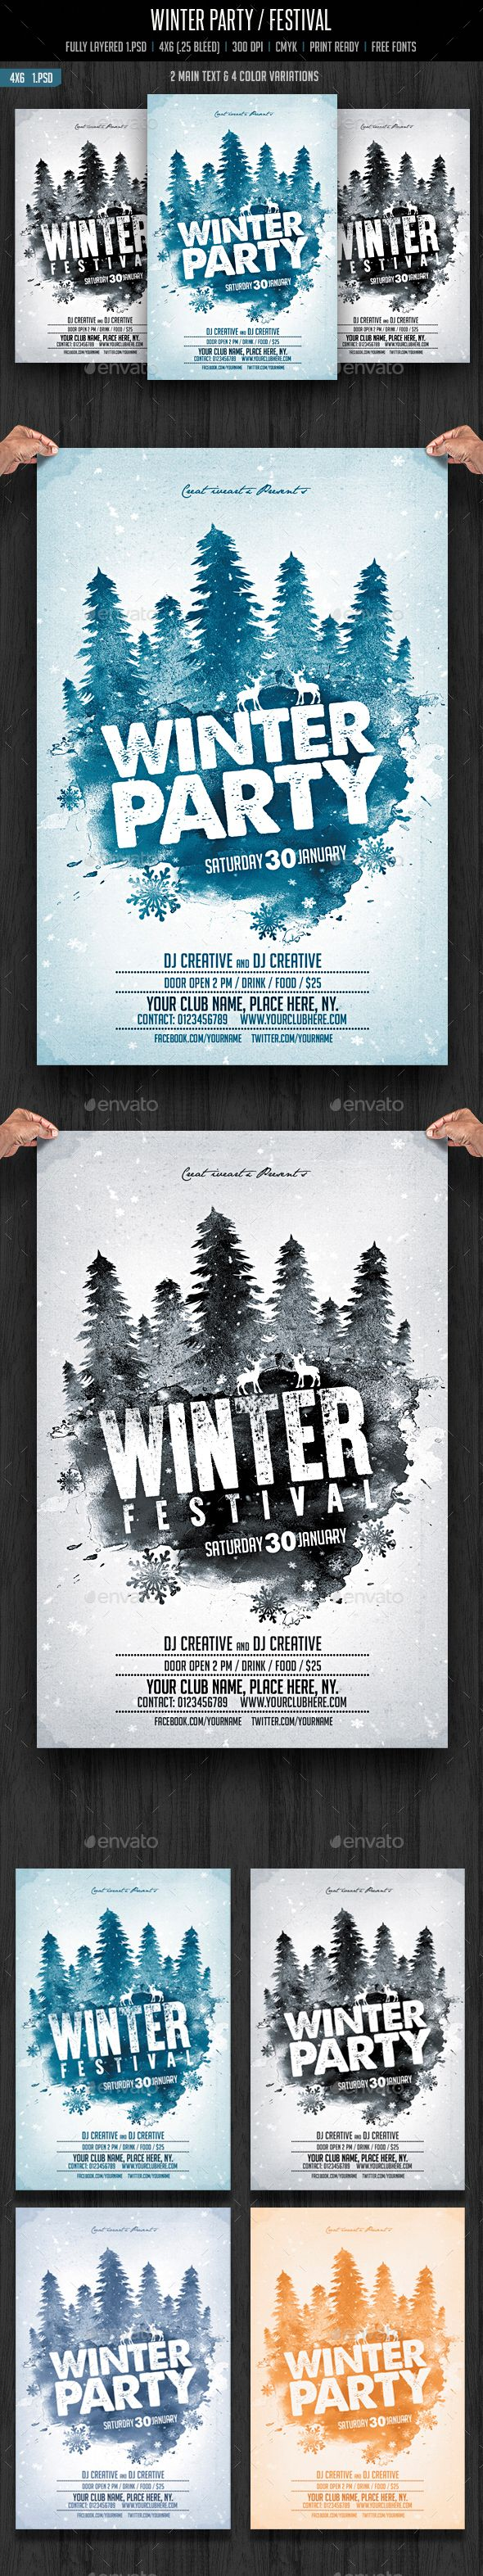 FLYER DESIGN: WINTER - Winter Party / Festival Flyer Template PSD #design Download: http://graphicriver.net/item/winter-party-festival/13700115?ref=ksioks